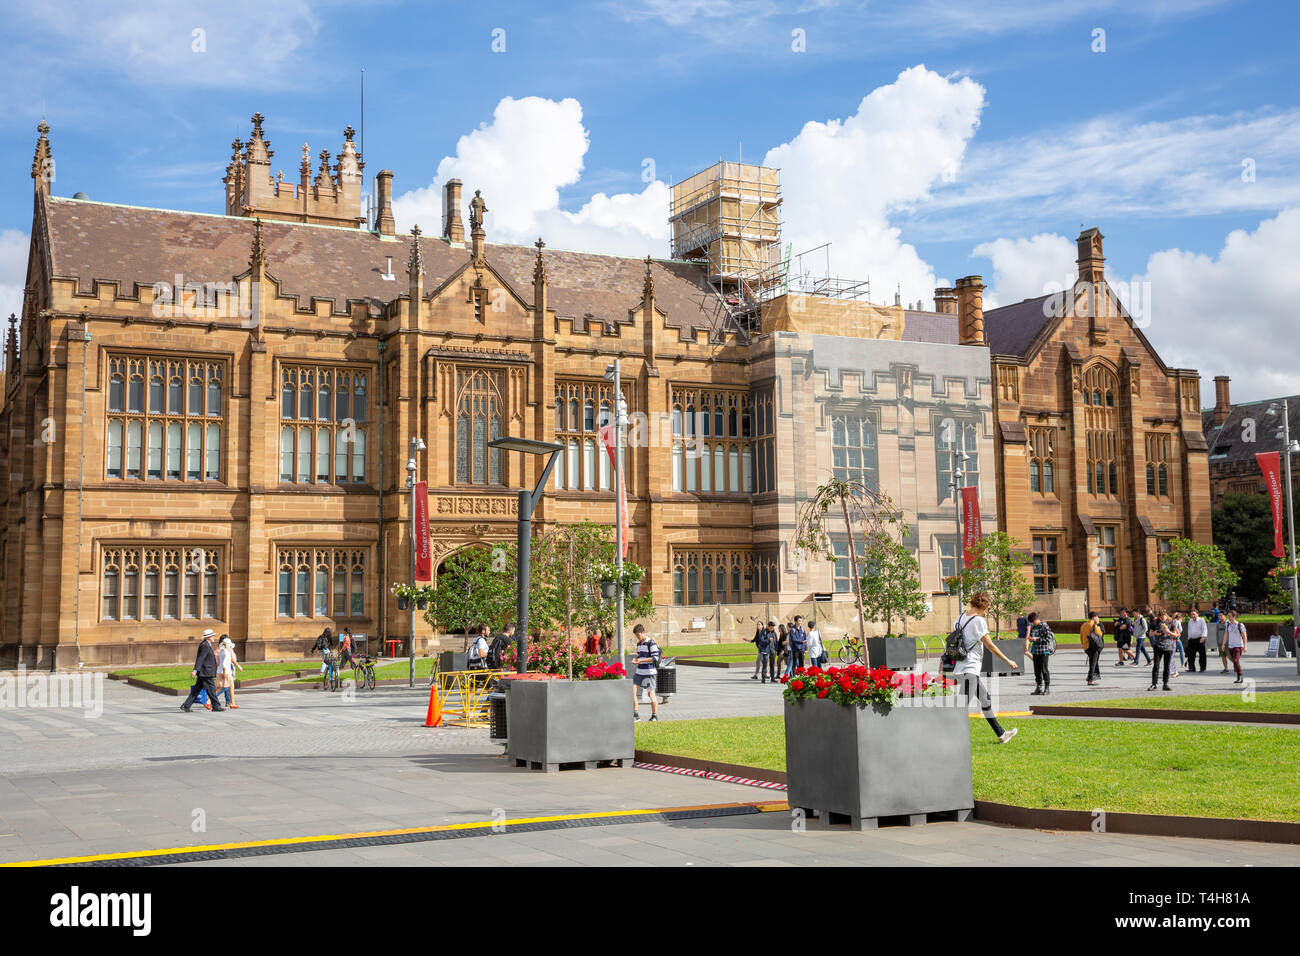 University of Sydney and the Anderson stuart building which contains Sydney medical school,Sydney,Australia - Stock Image